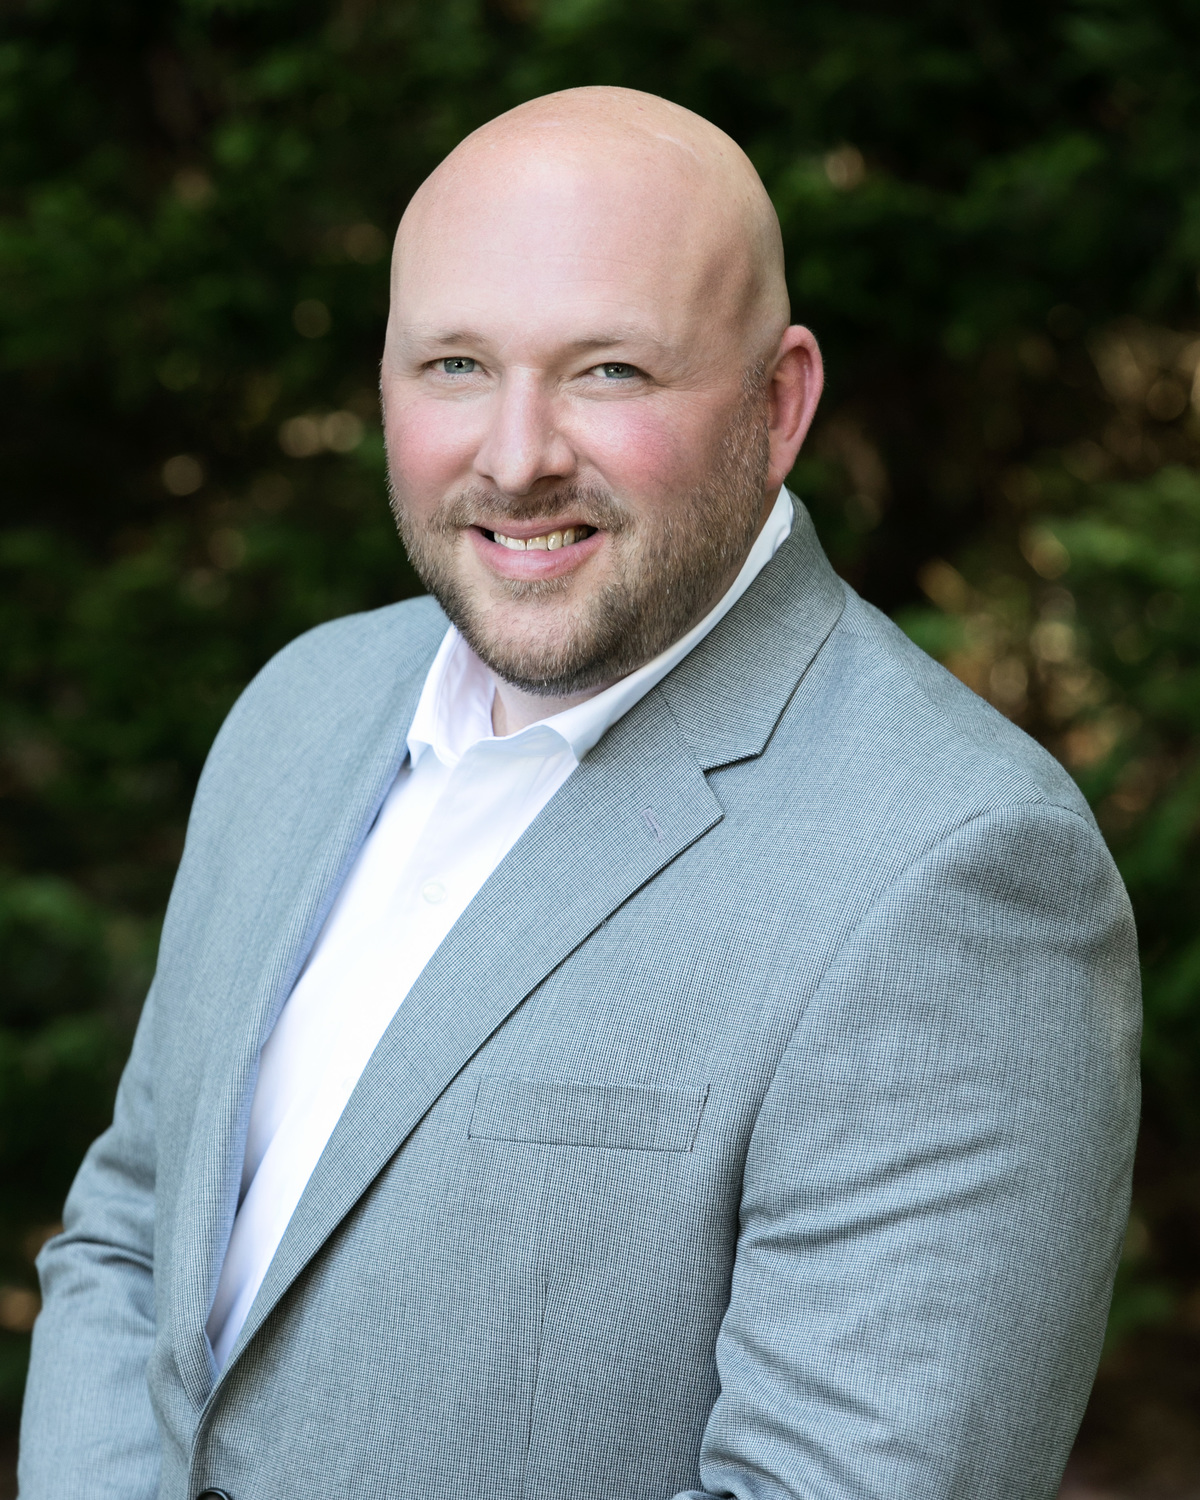 "<span style=""font-weight: bold;"">Christopher Boone - Realtor/Listing Specialist/Team Lead</span>"